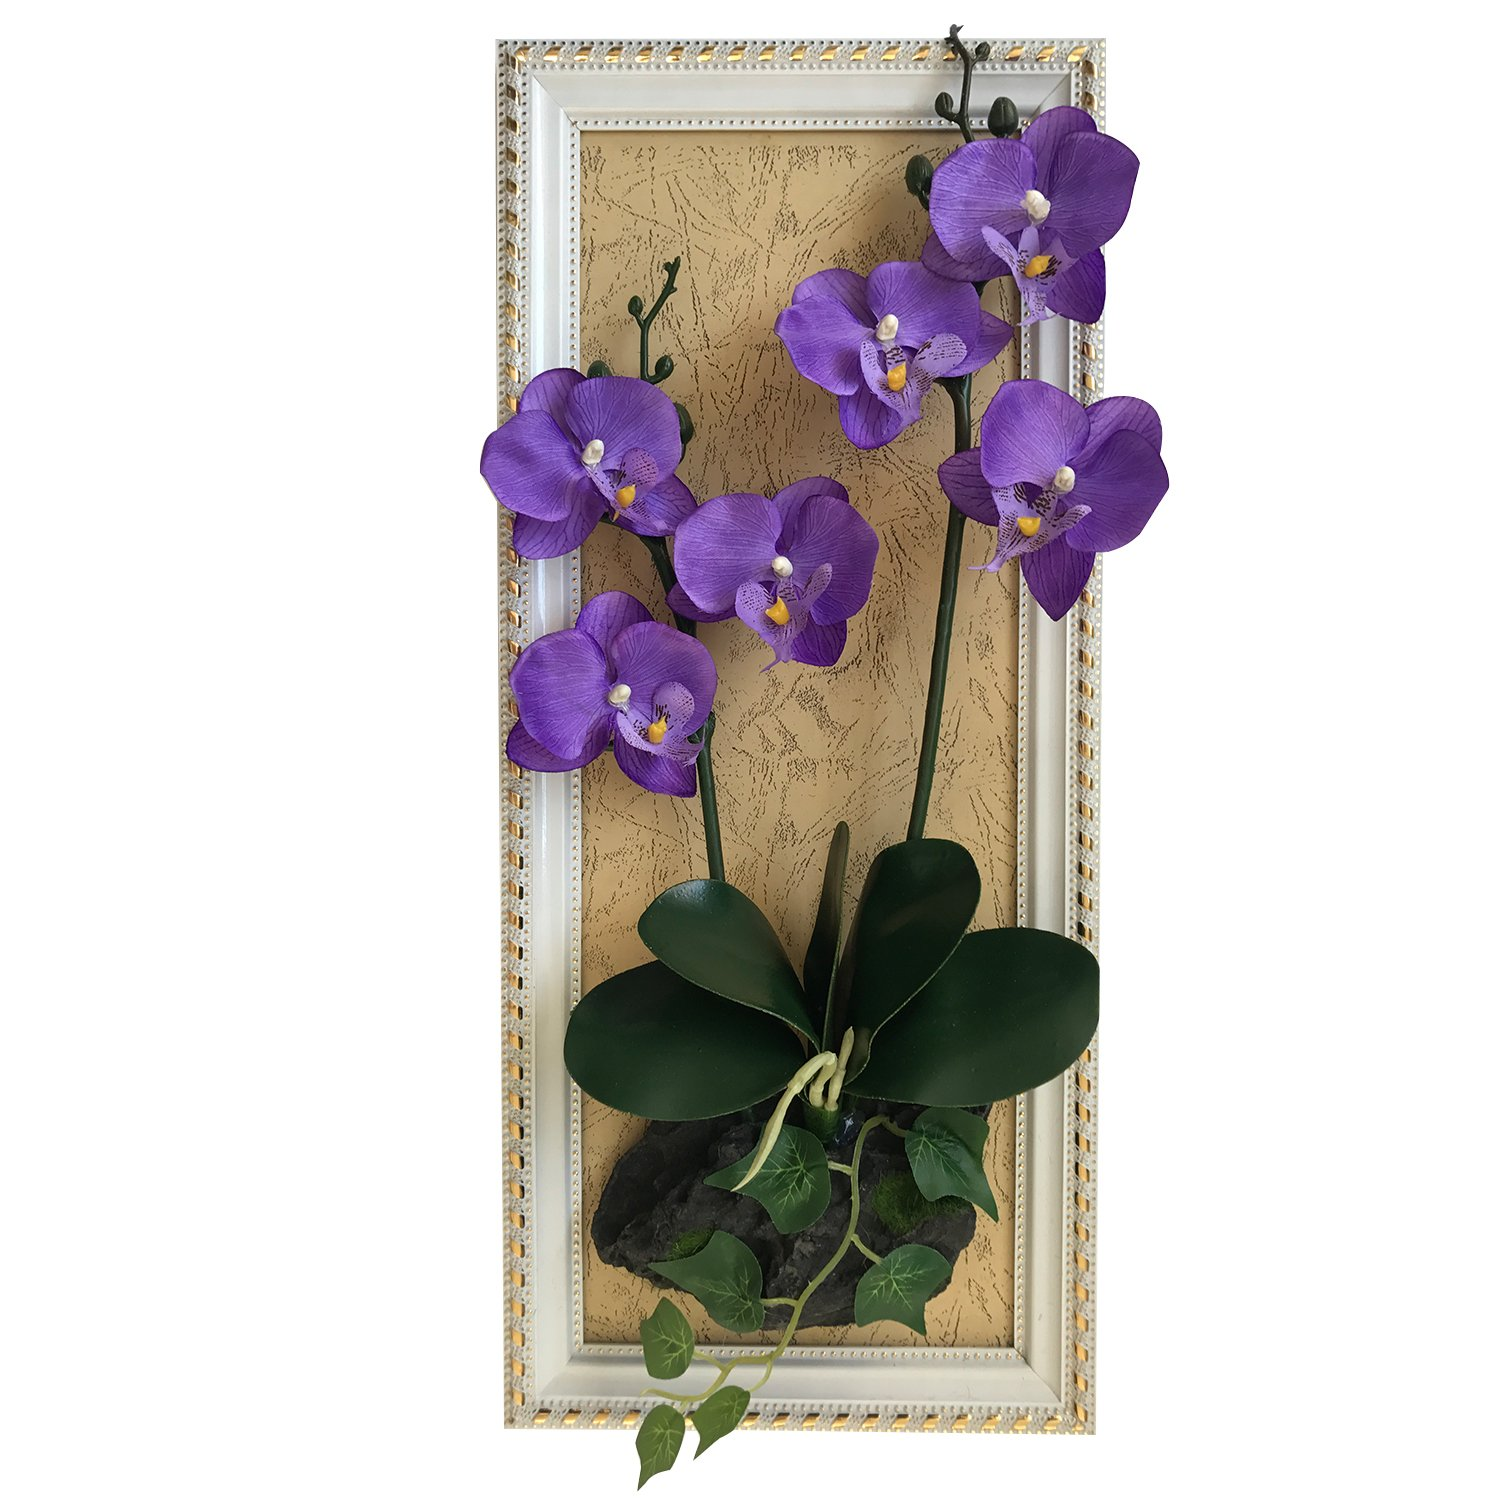 NBSY 19x8.4in Wall Hanging Artificial Flowers with Wood Frame,Art Wall Decor for Office and Home (Phalaenopsis-1)